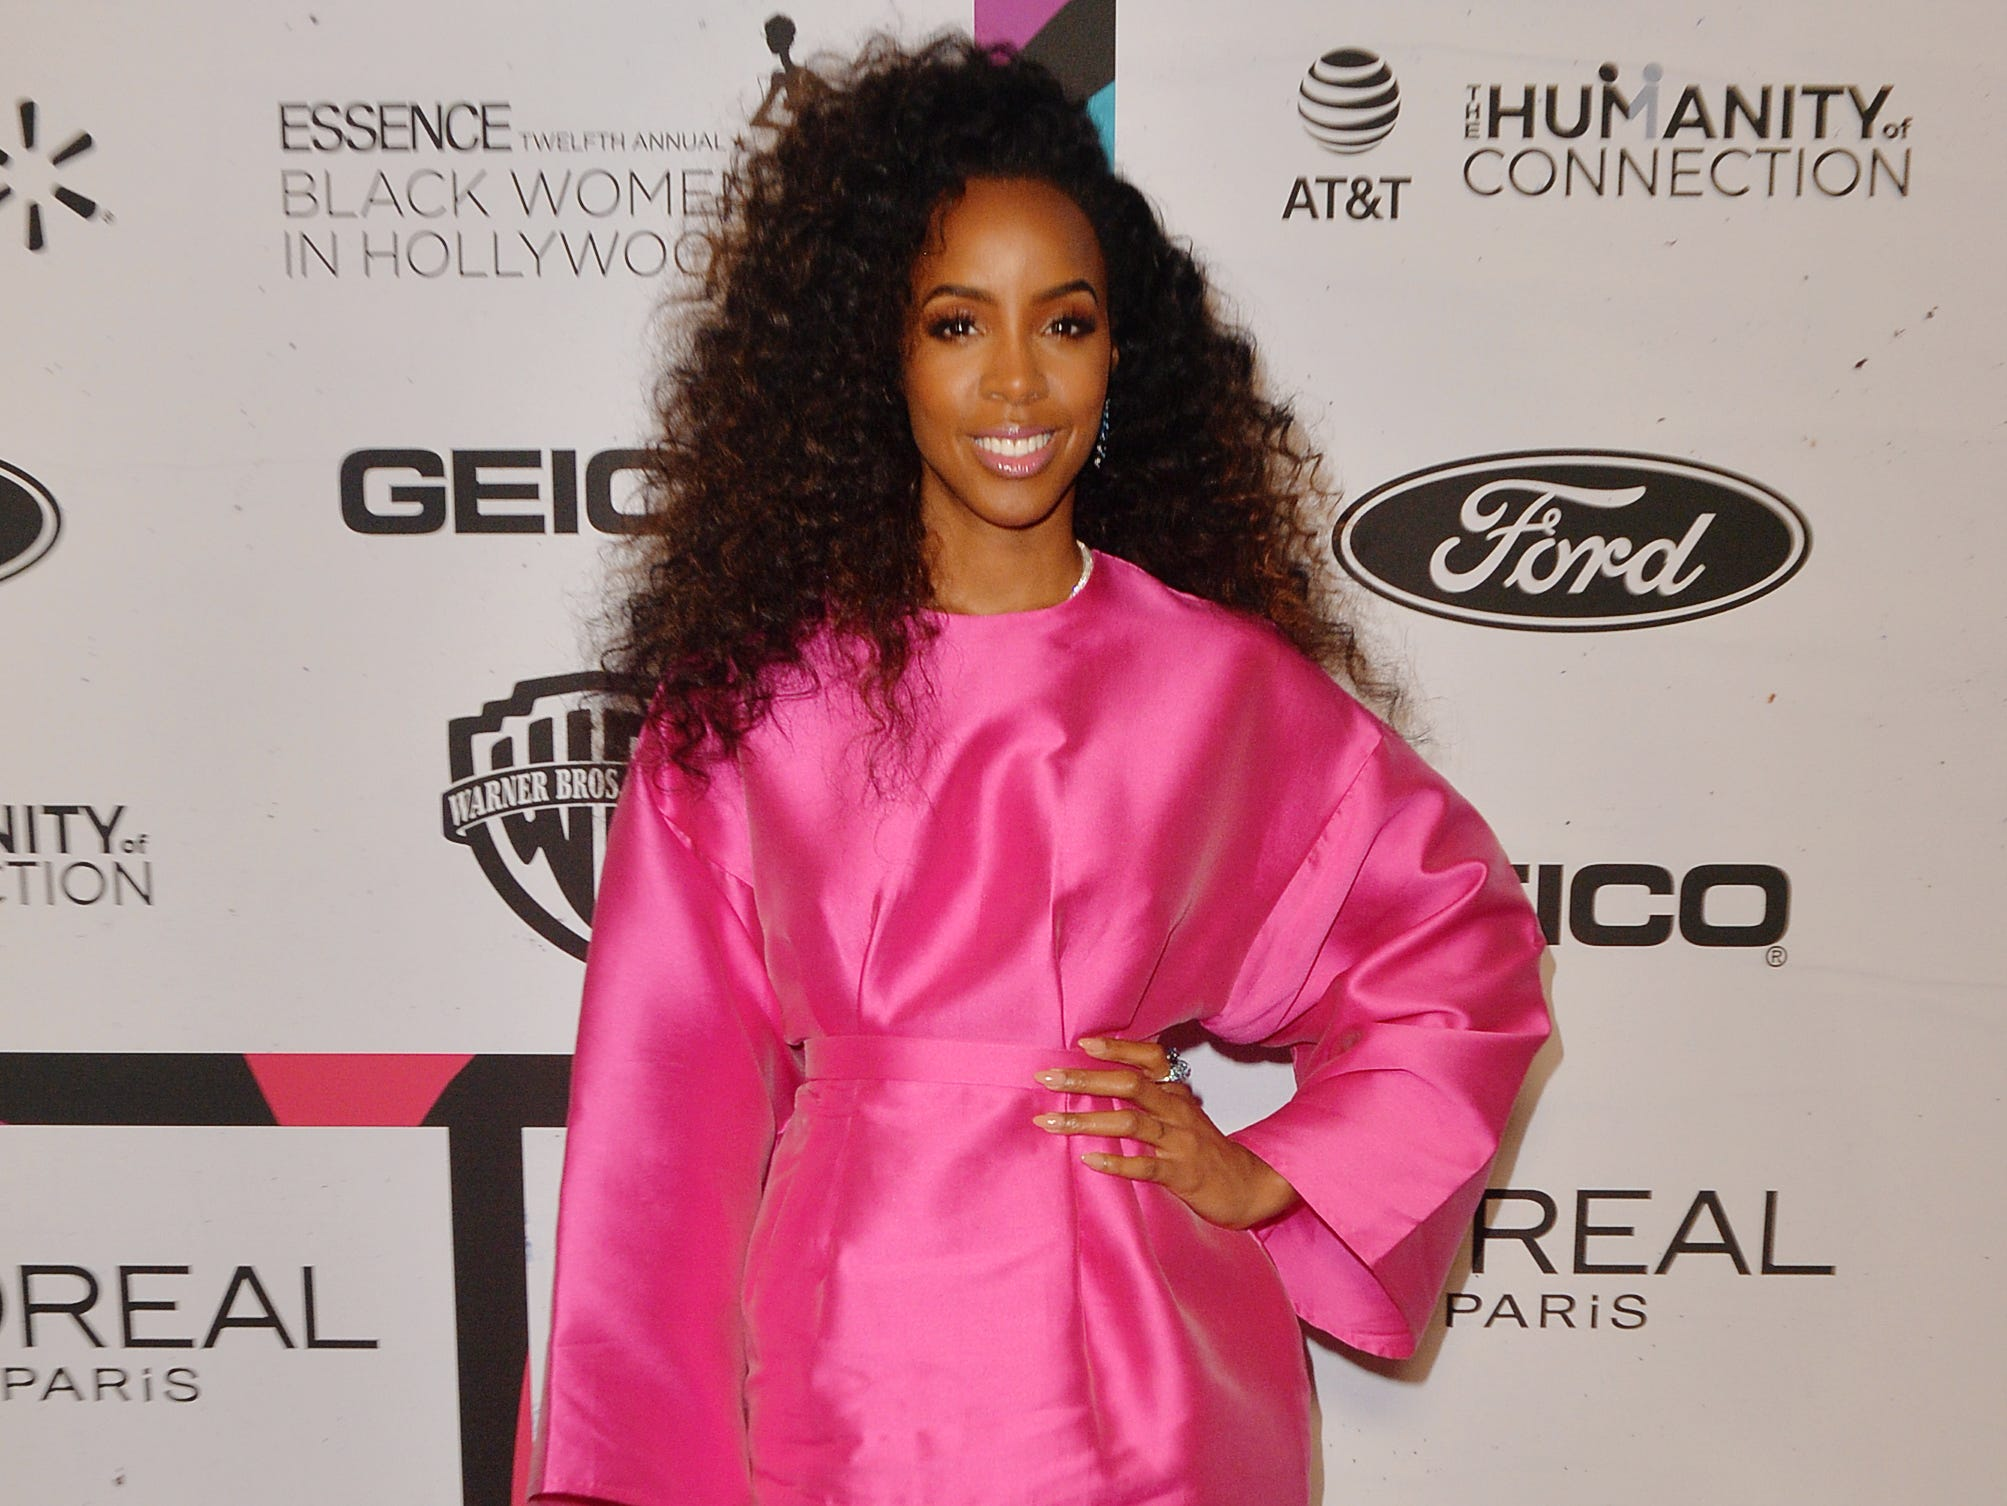 BEVERLY HILLS, CALIFORNIA - FEBRUARY 21: Kelly Rowland arrives at the 2019 Essence Black Women In Hollywood Awards at the Beverly Wilshire Four Seasons Hotel on February 21, 2019 in Beverly Hills, California. (Photo by Jerod Harris/FilmMagic) ORG XMIT: 775282713 ORIG FILE ID: 1131259535